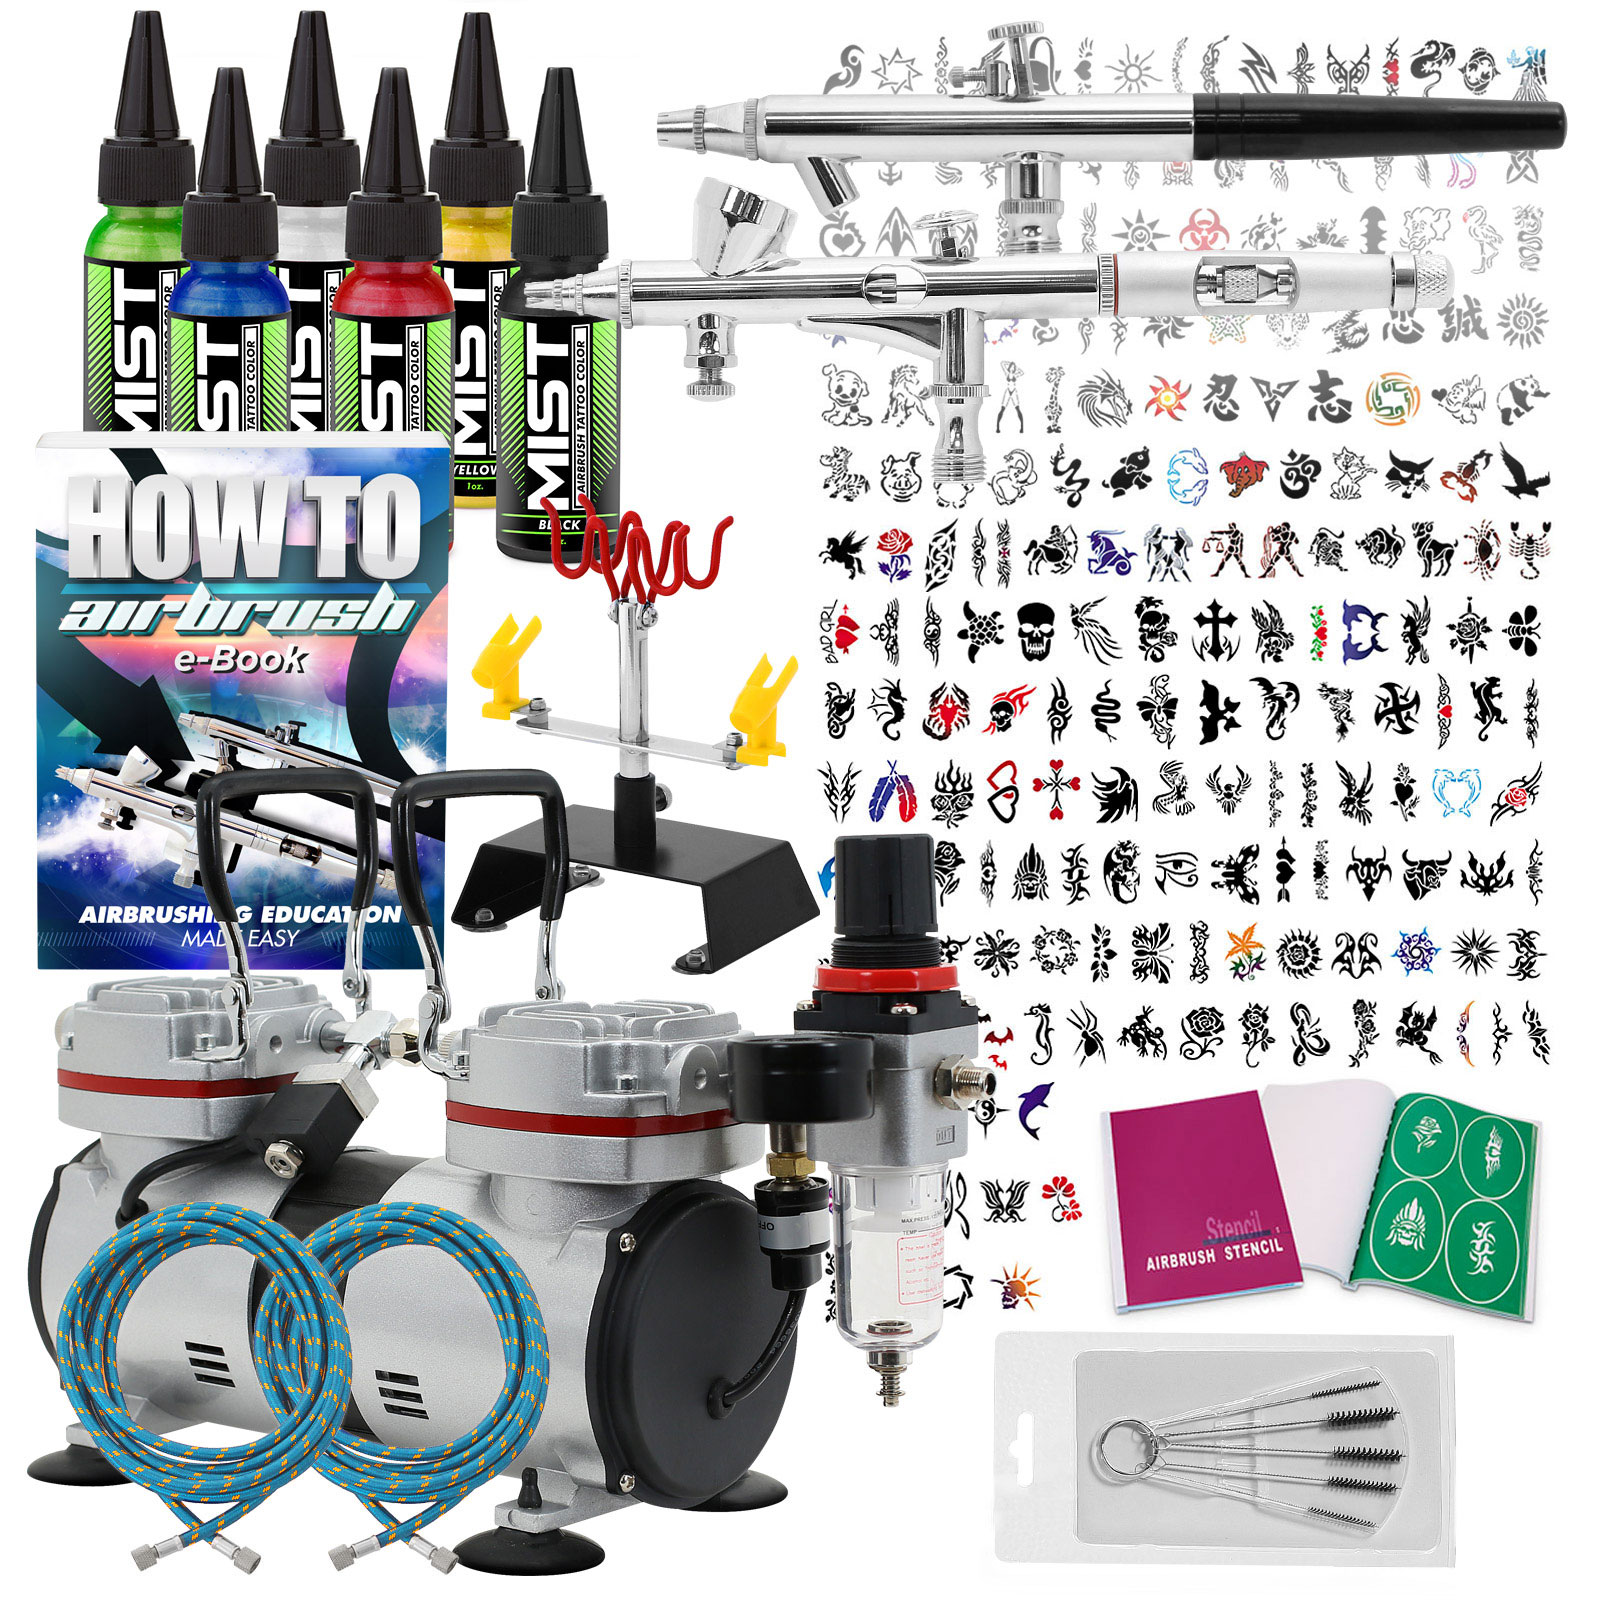 Temporary Tattoo Airbrush Kit With Compressor and Stencils | eBay